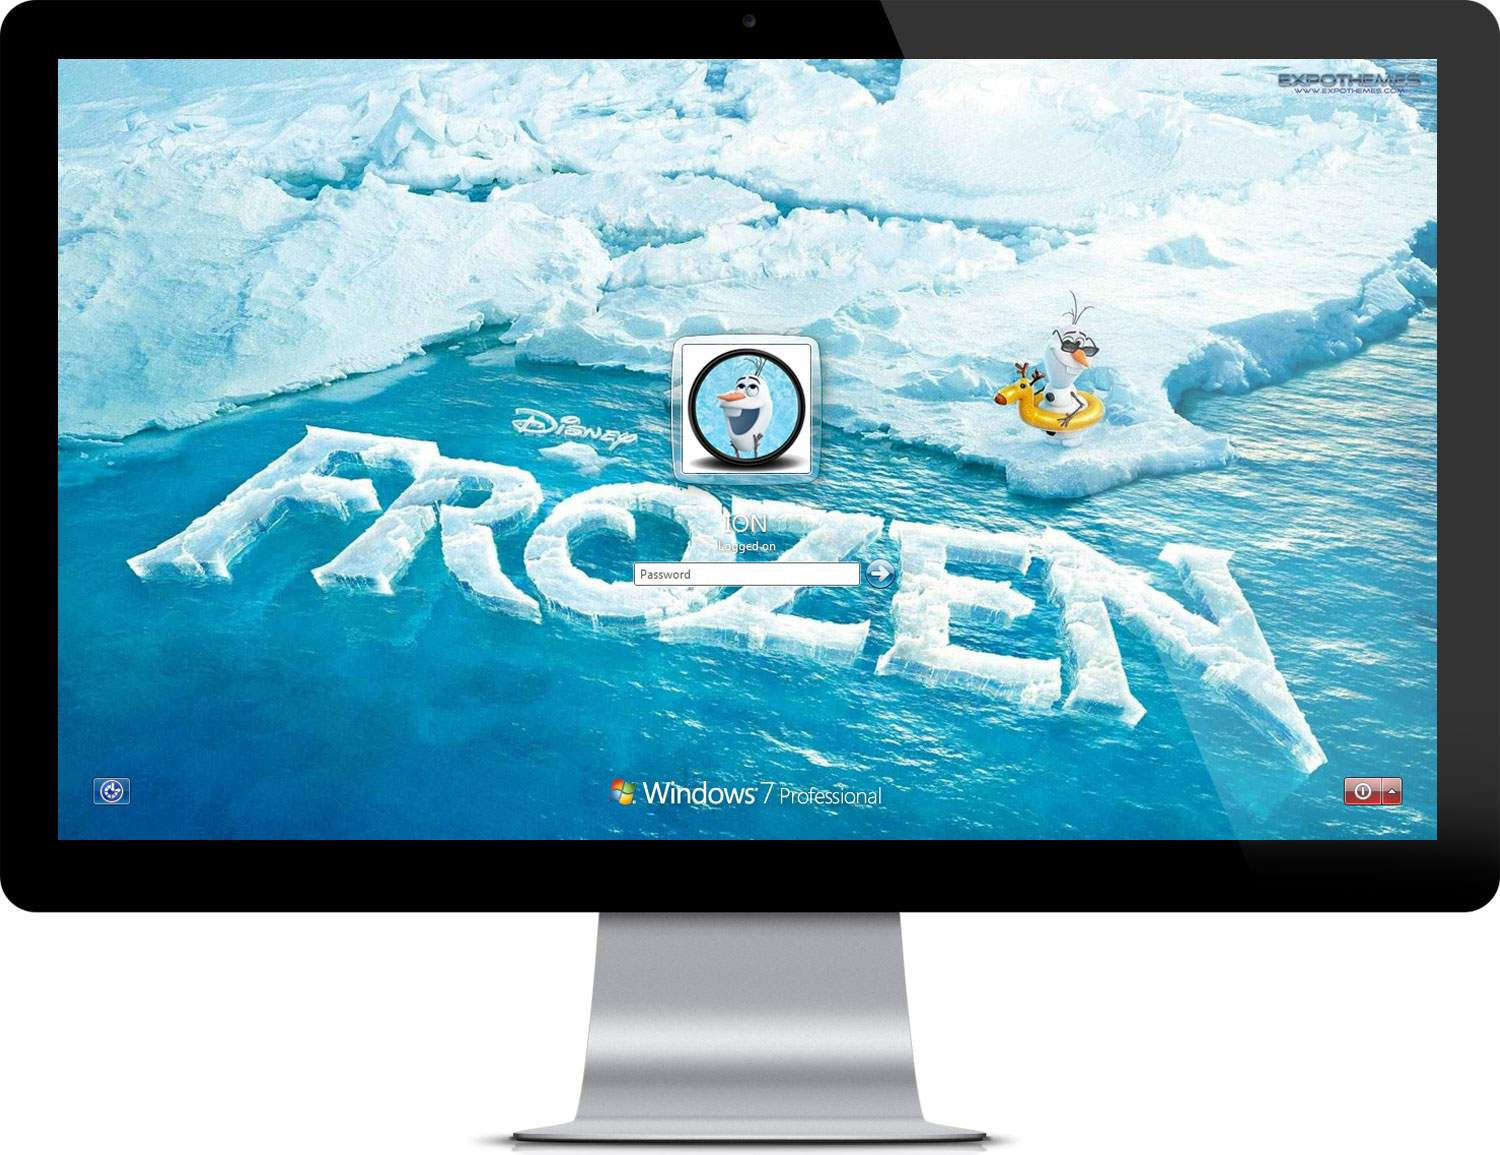 Frozen Startup Screen and Account Picture 1500x1155